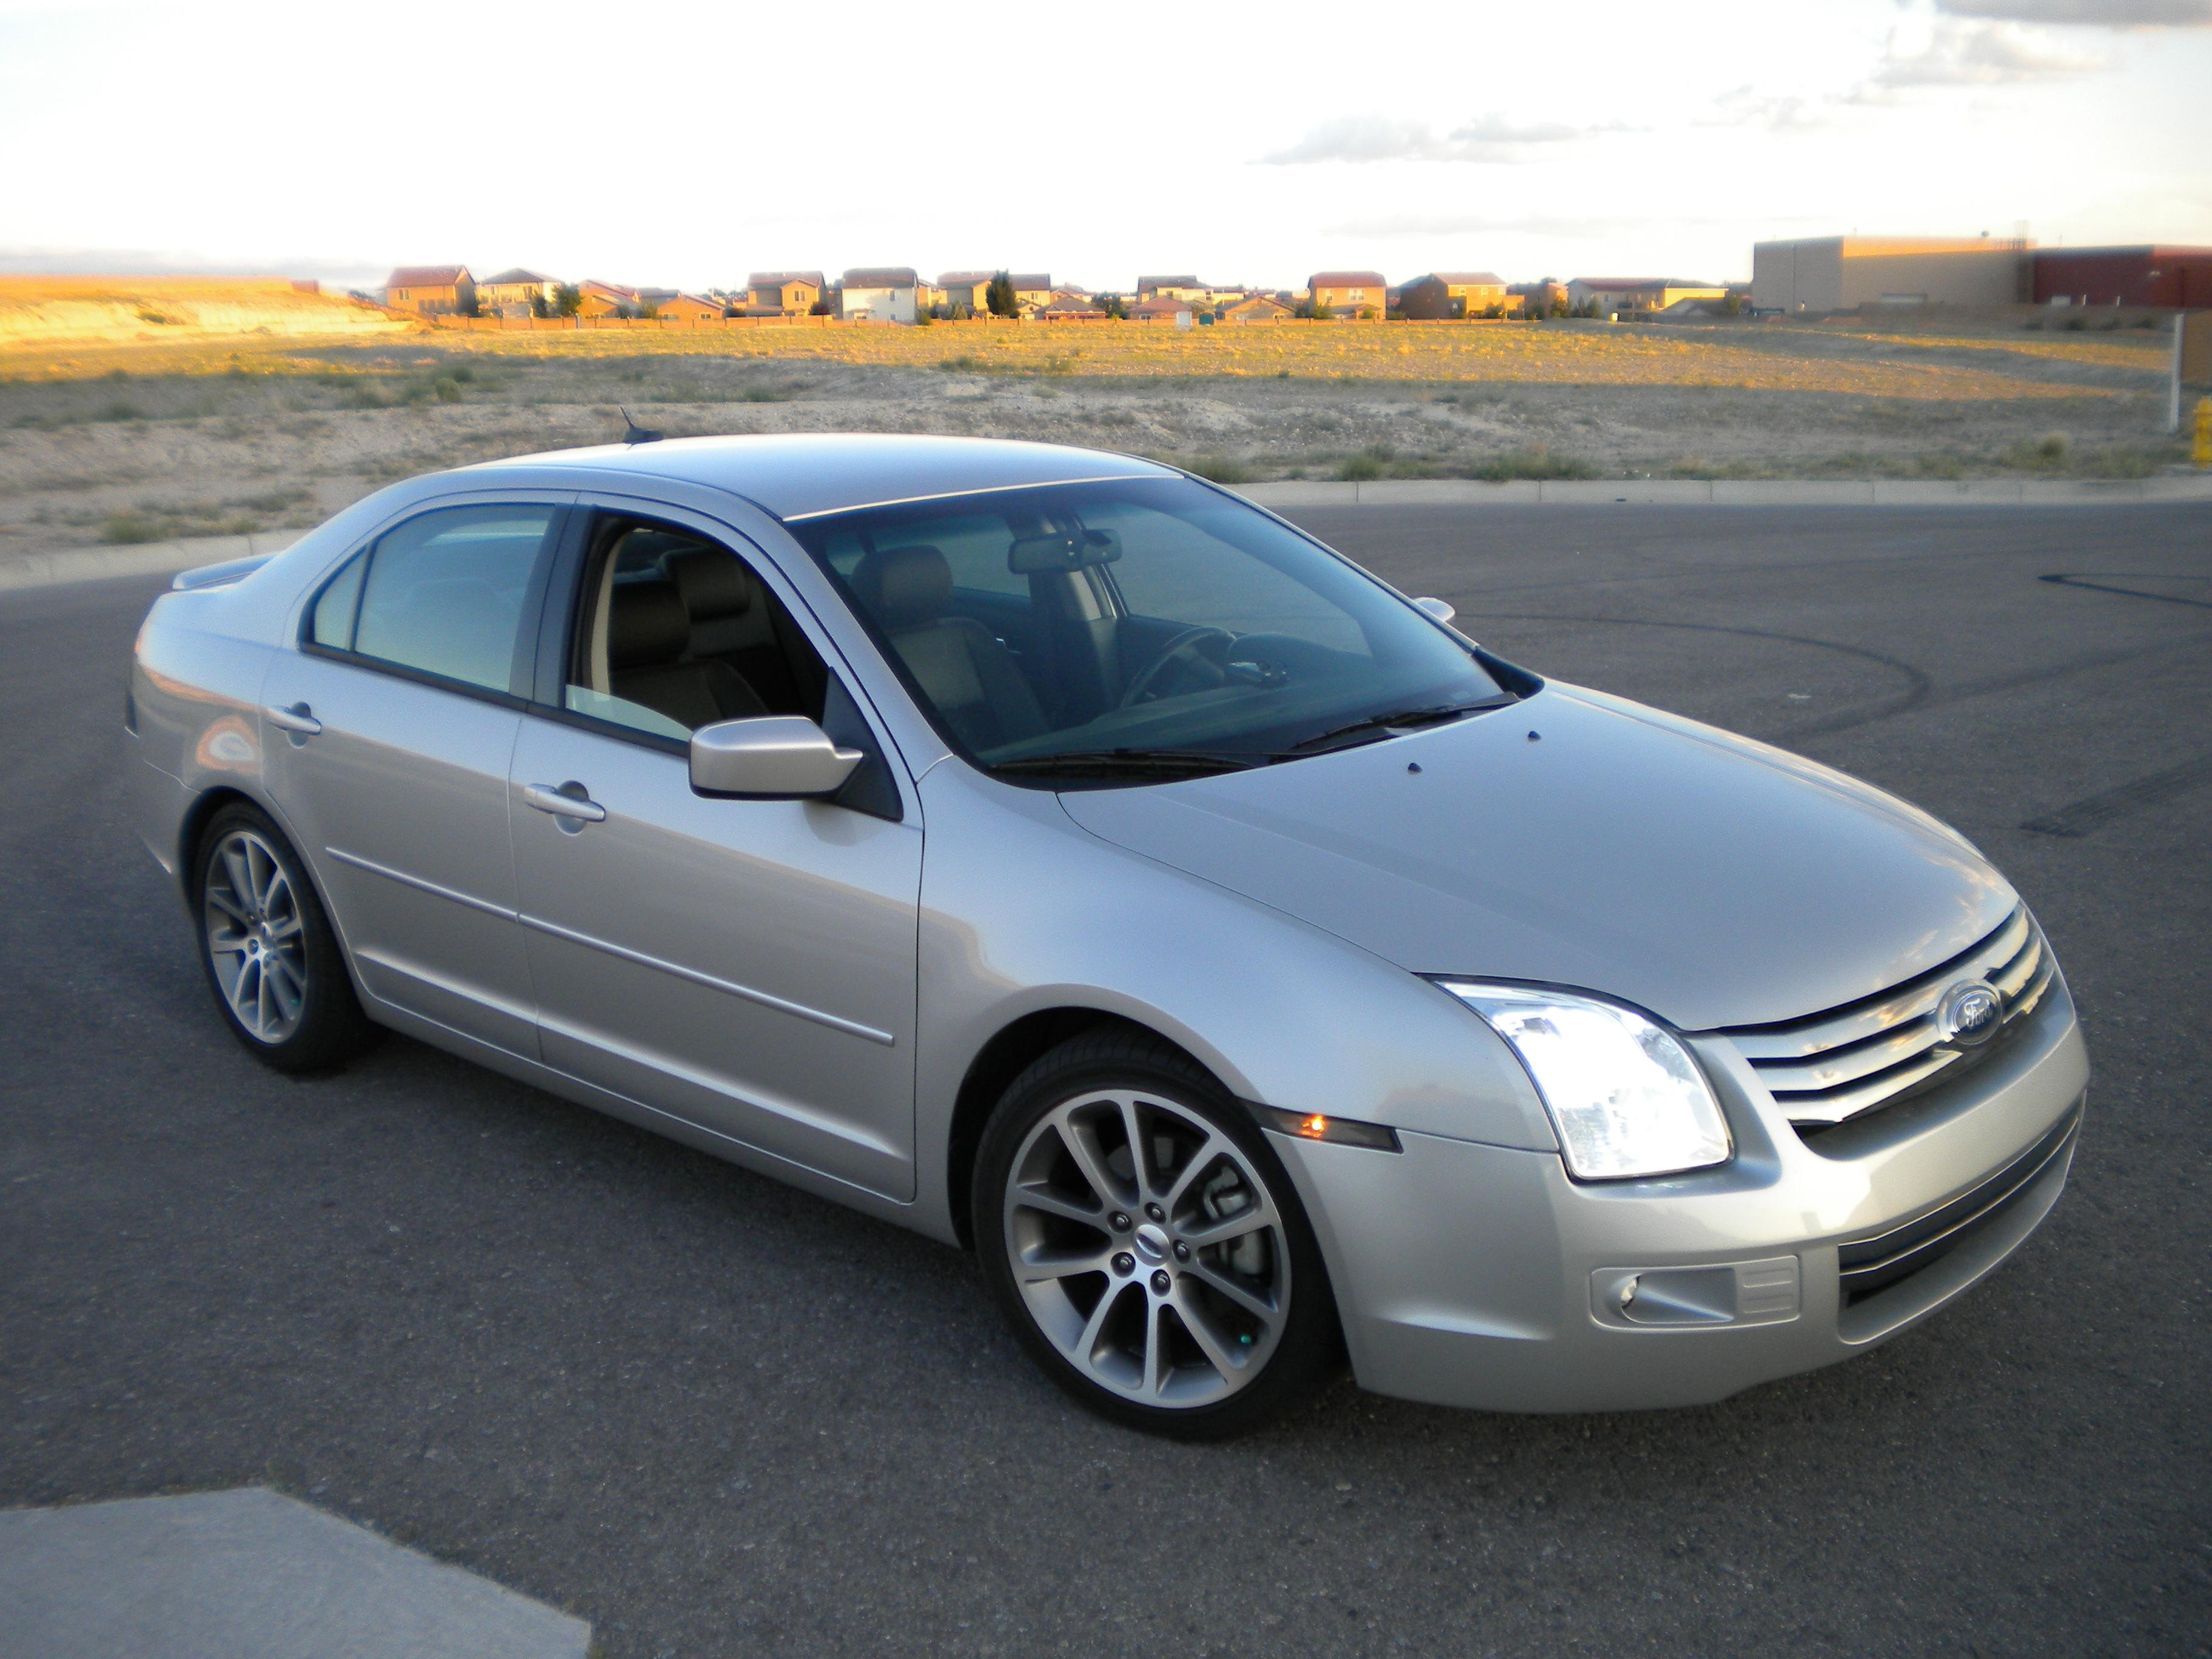 Ford Fusion 2008 #6